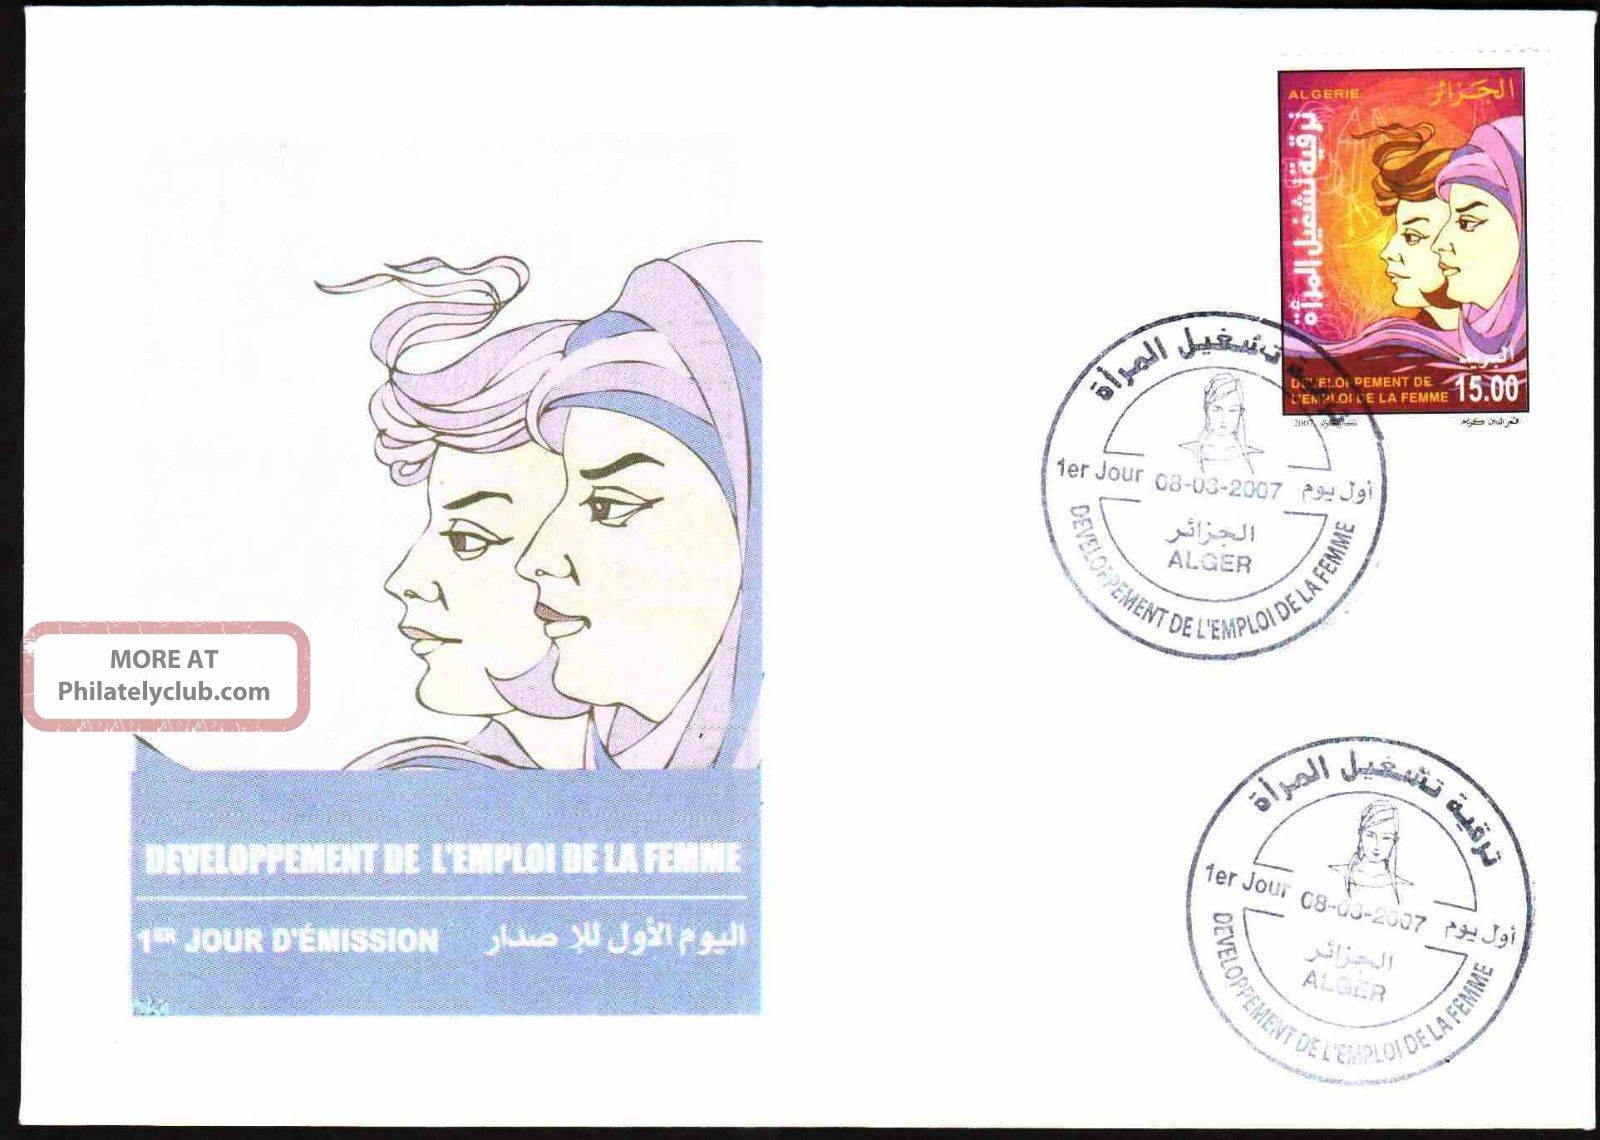 Algeria 2007 - Employment Of Women,  Scott 1395 - Fdc,  With Topical Cancel Topical Stamps photo